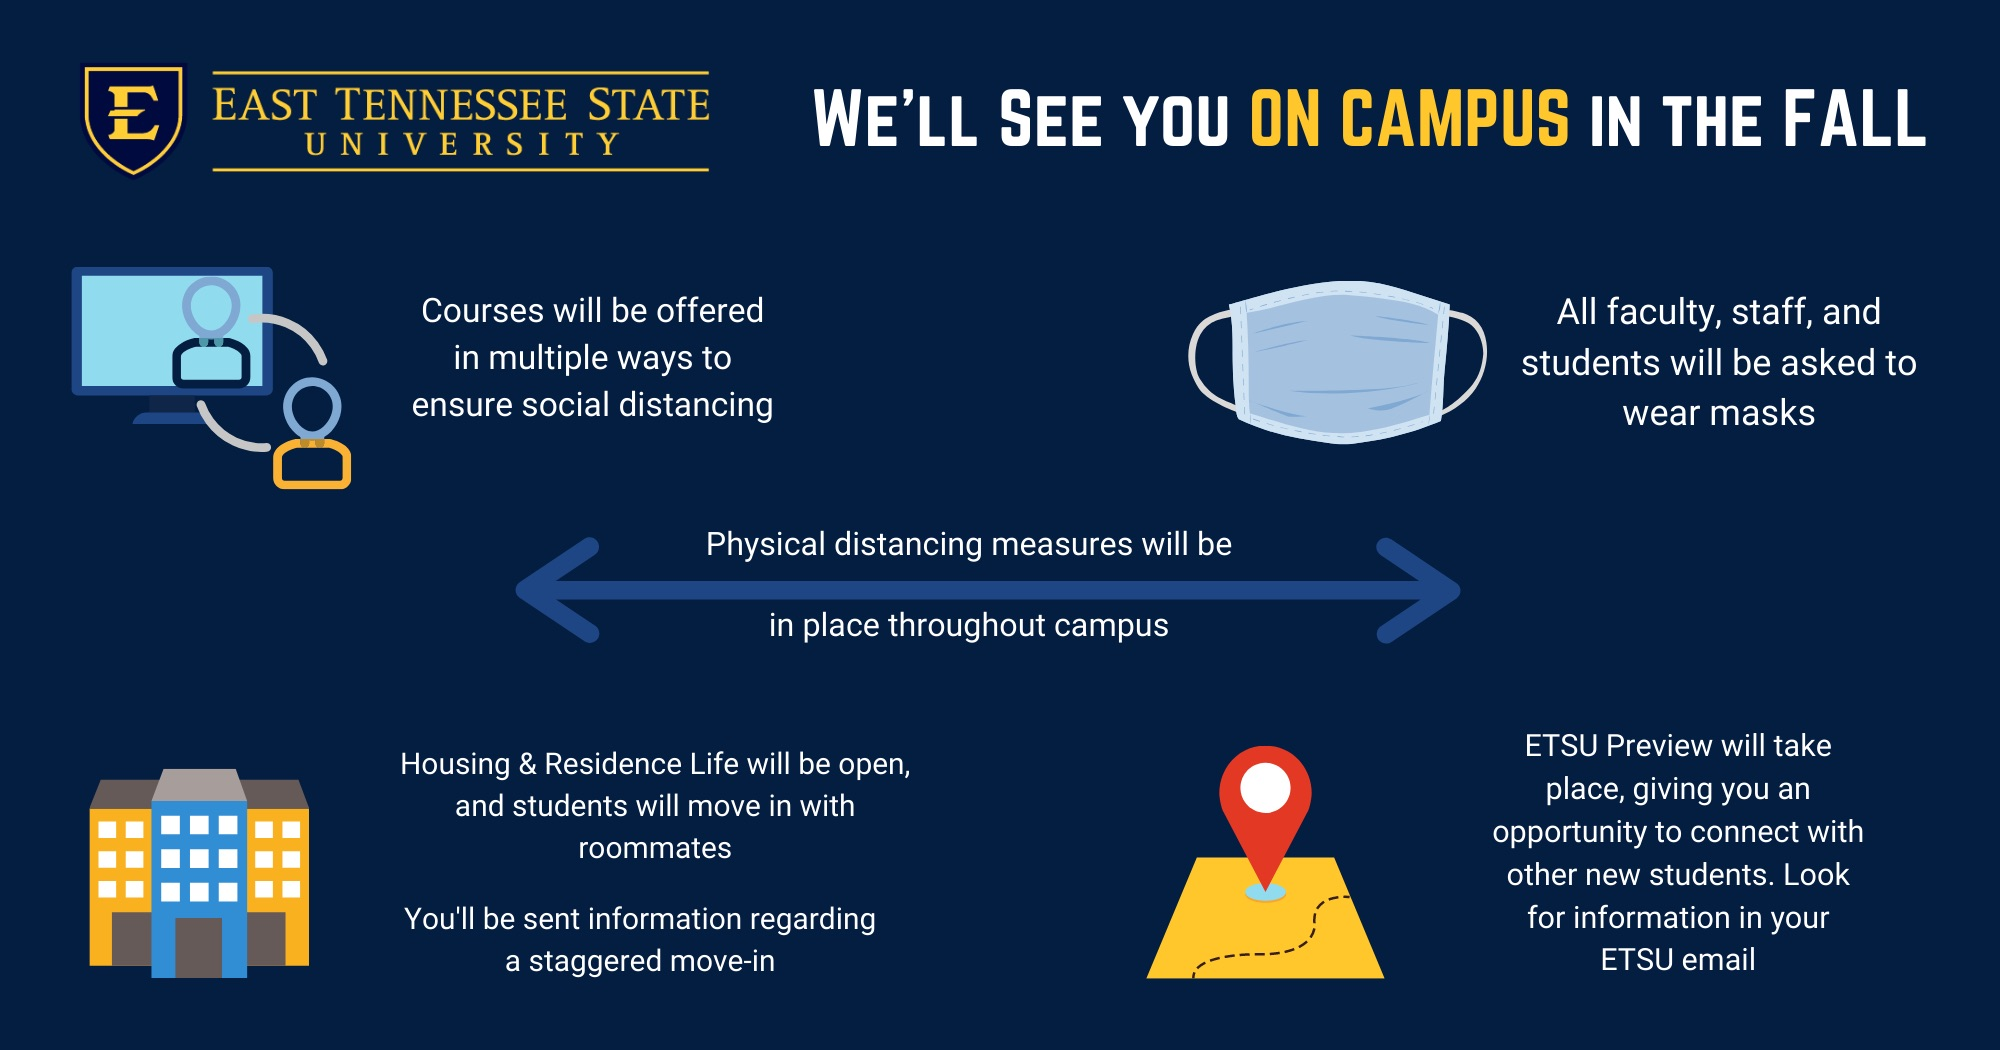 see you on campus details